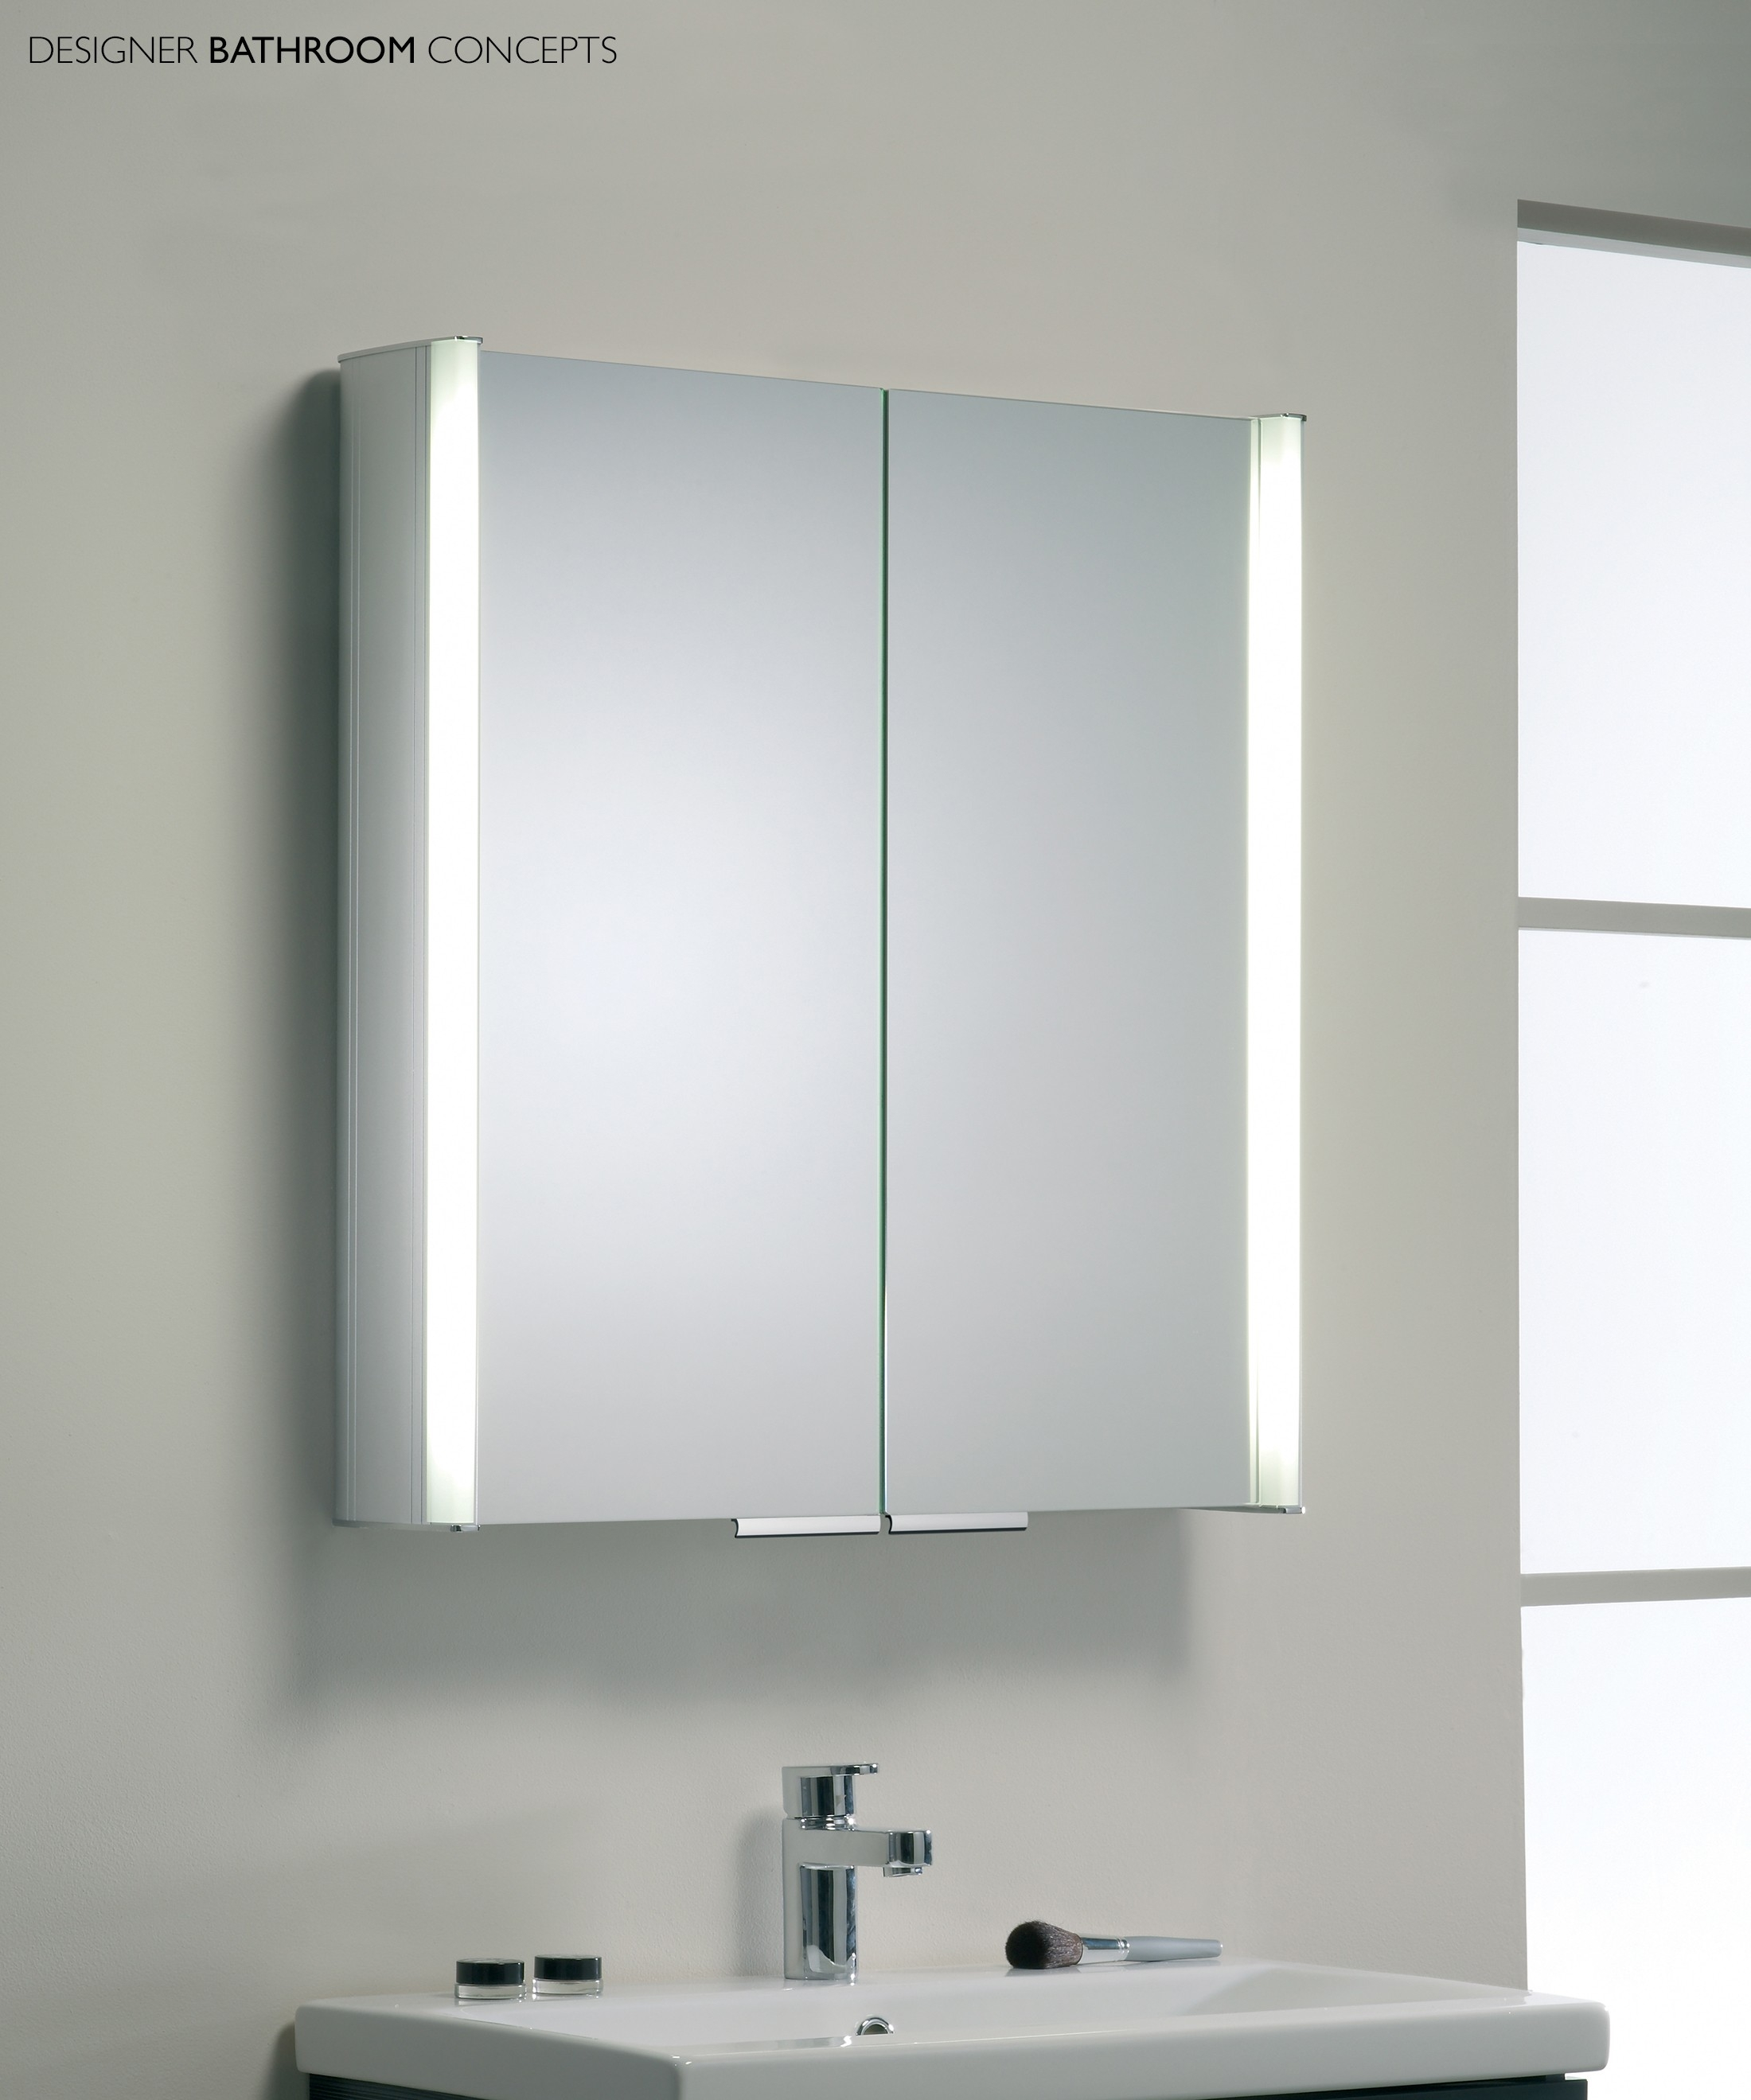 Permalink to Stainless Steel Mirrored Bathroom Wall Cabinets